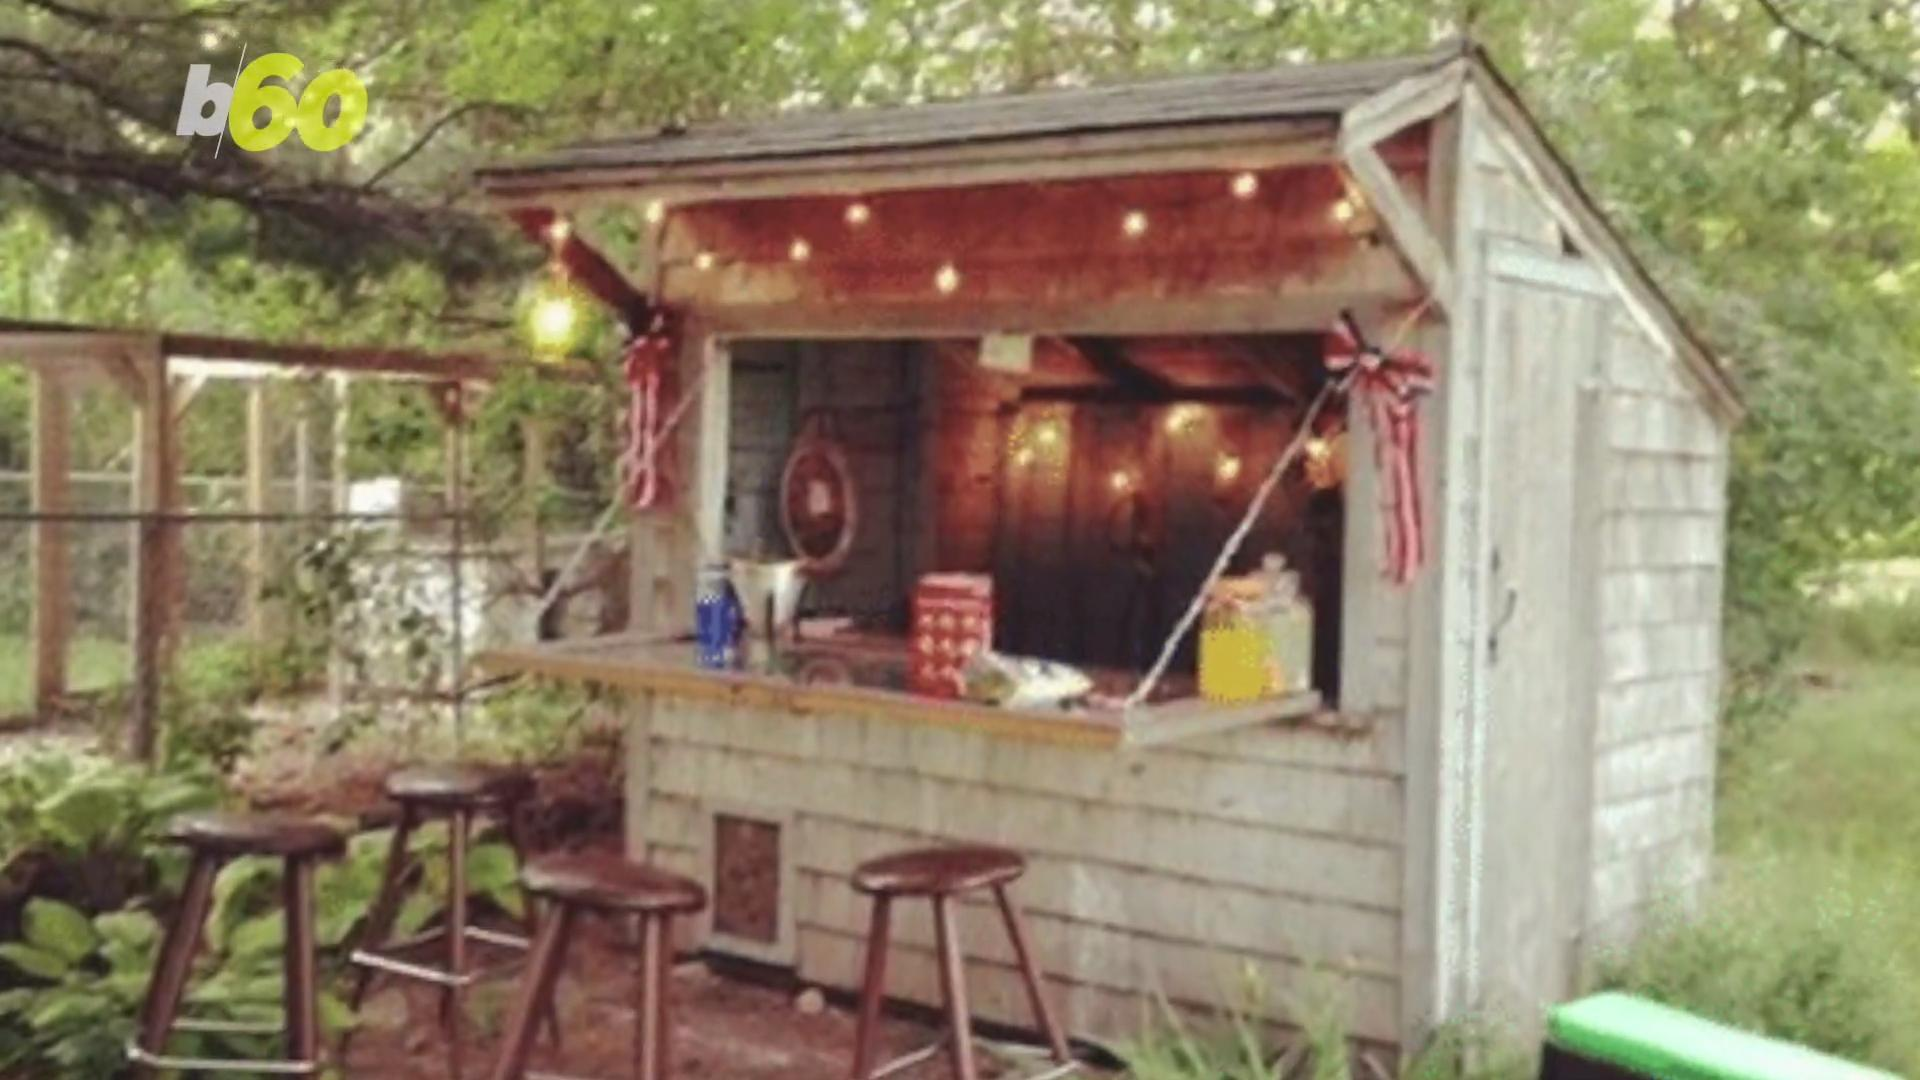 Forget the Man Cave, Backyard Bar Sheds Are the Way to Go